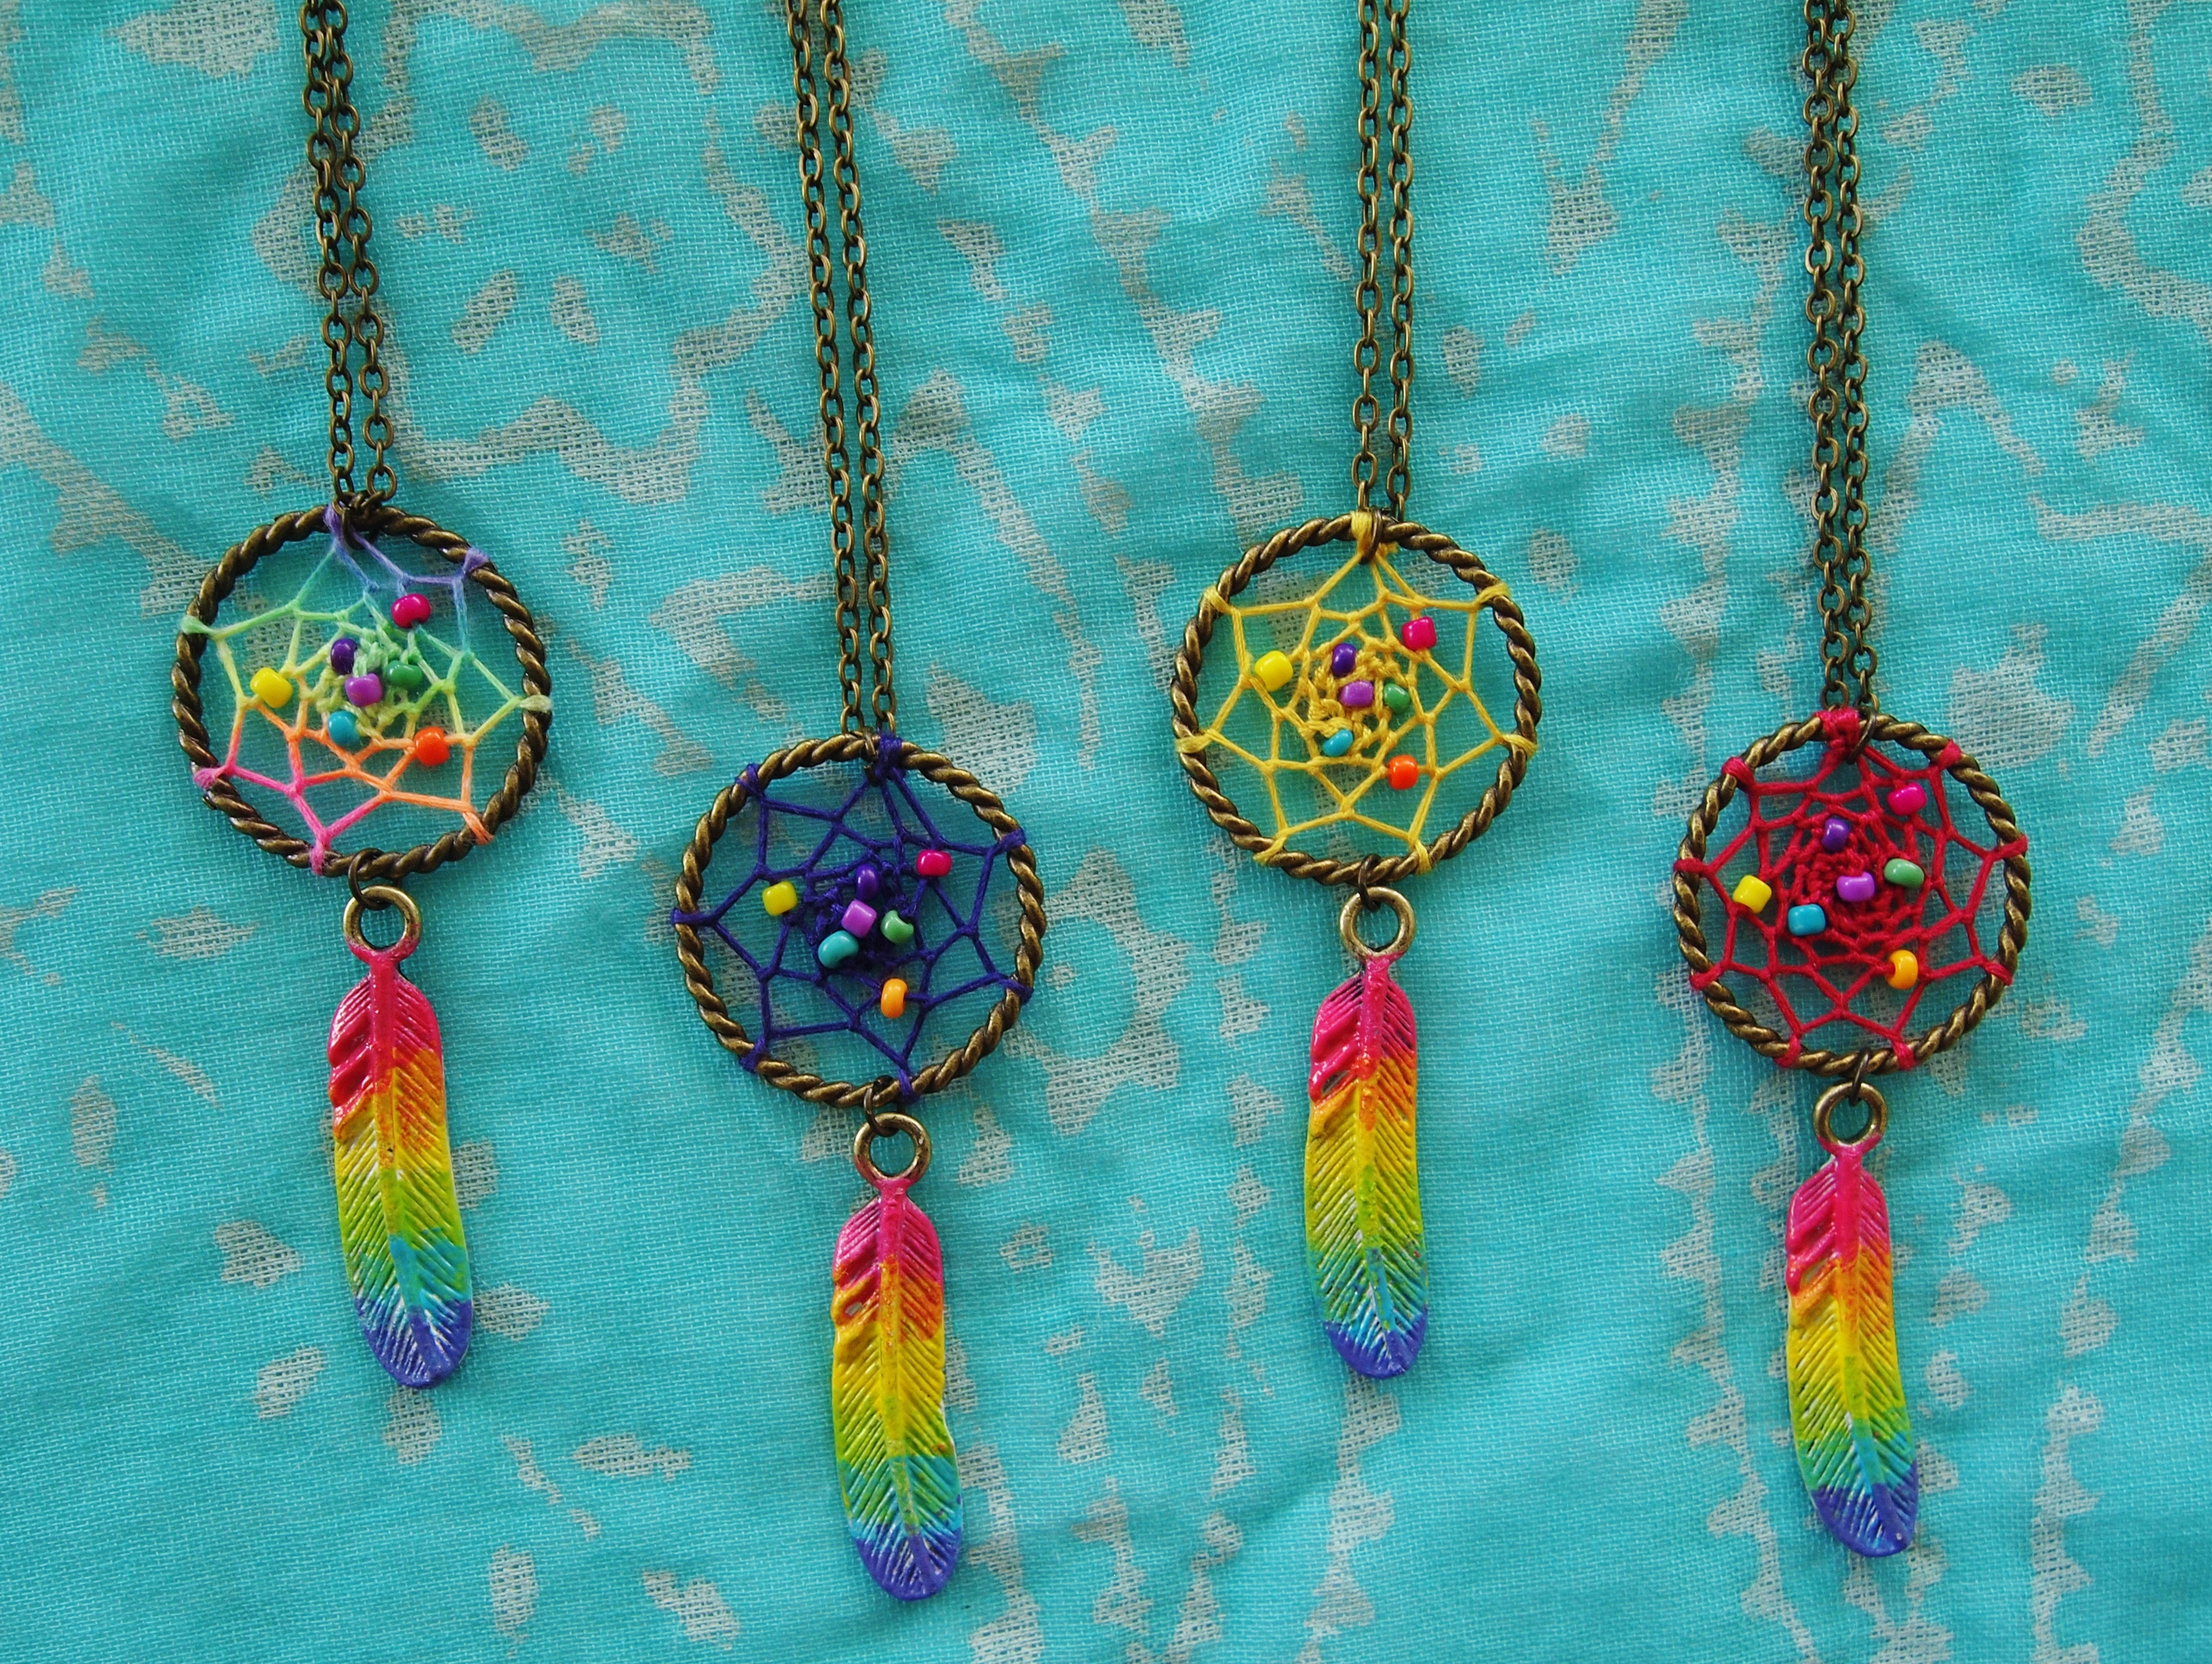 How To Make Dream Catcher Necklace handmade dreamcatchers malaysia Deeper Than Fashion 21